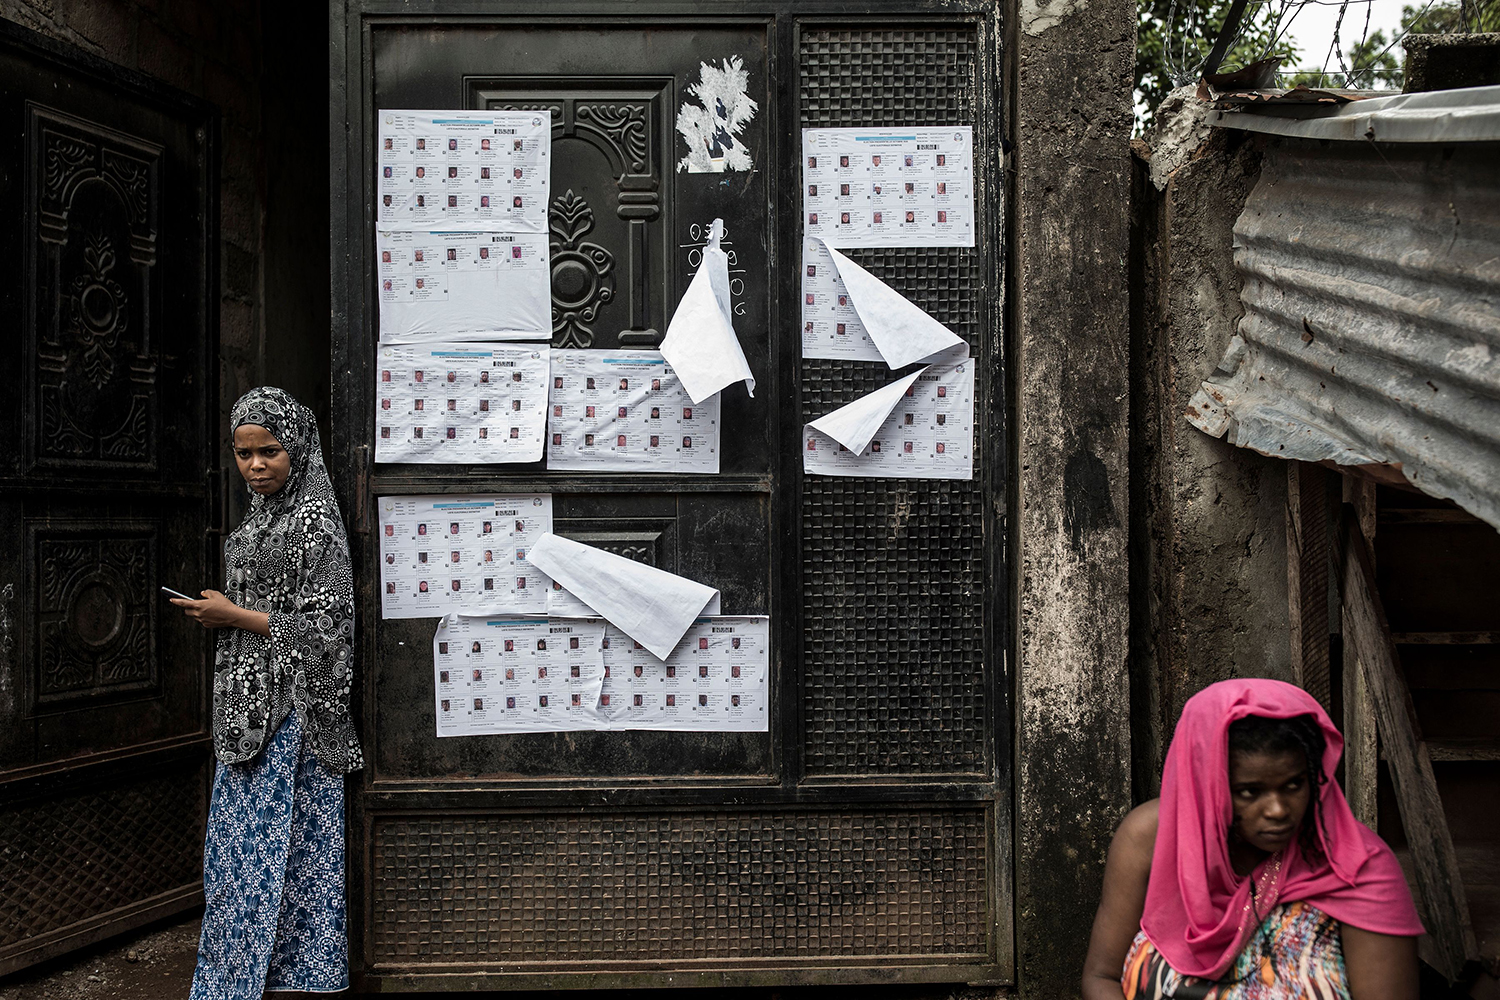 Women sit near candidate lists posted on a door during presidential elections in Conakry, Guinea, on Oct. 18. Guineans began voting slightly ahead of schedule in the first high-risk round of an election that marks the start of a busy electoral cycle in West Africa. JOHN WESSELS/AFP via Getty Images